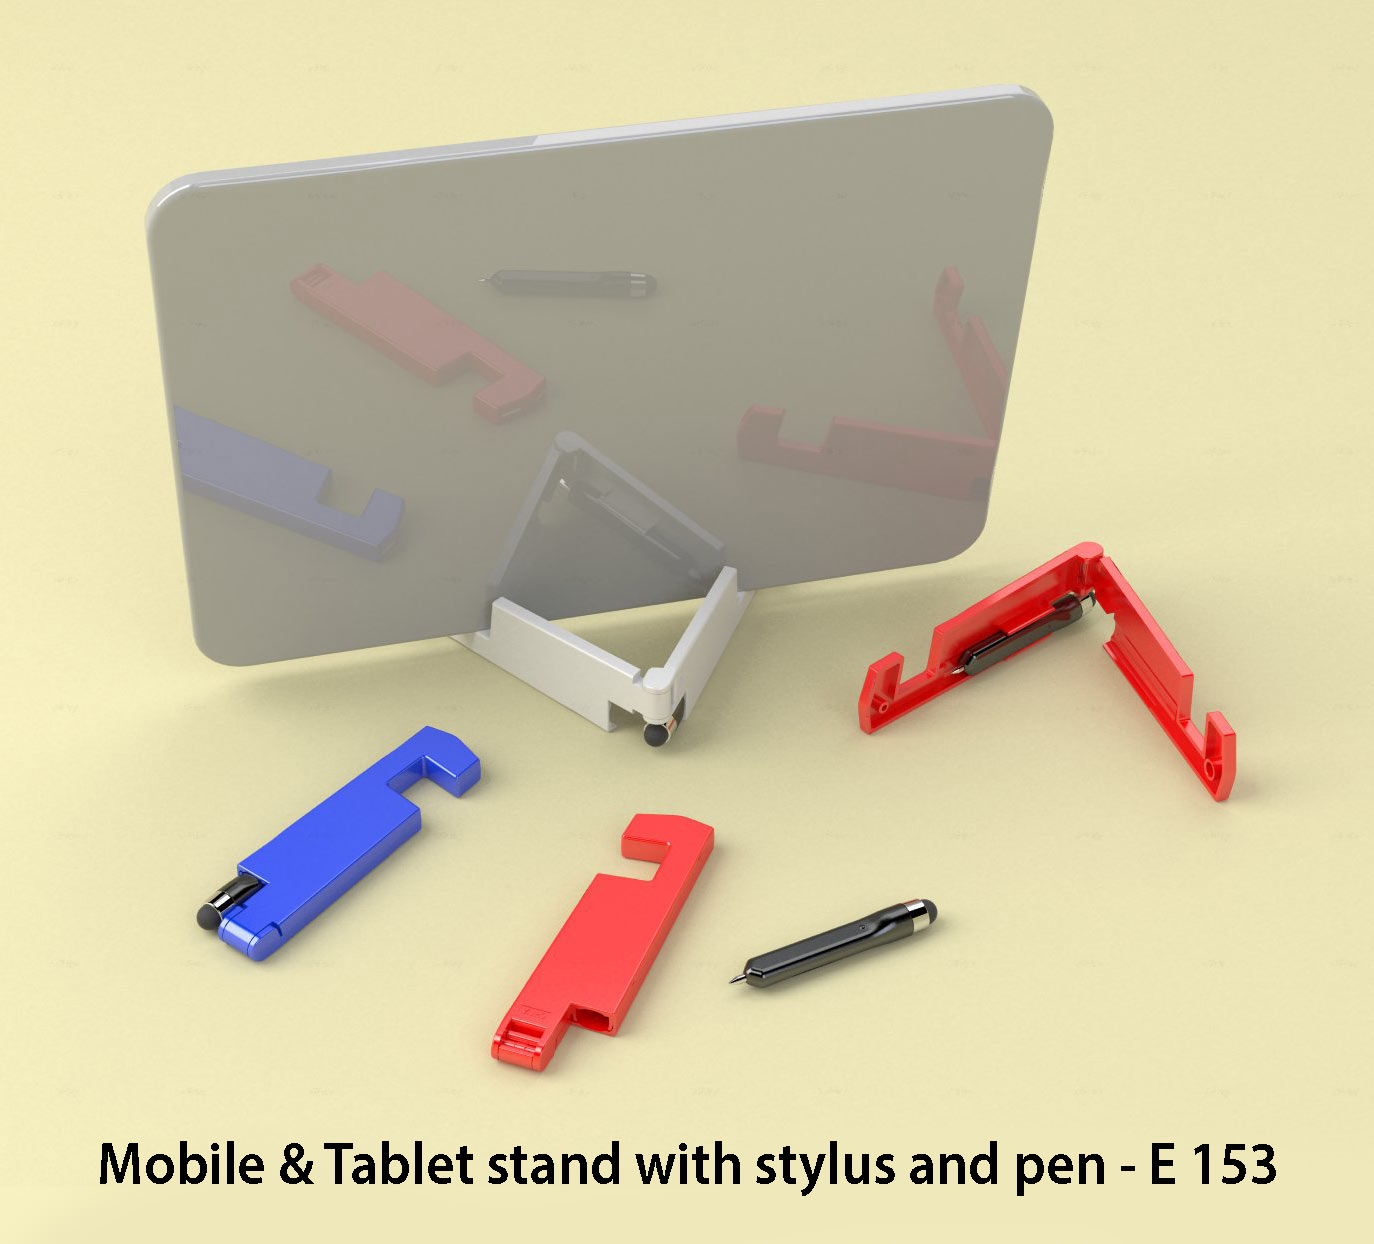 E153 - Mobile & Tablet stand with stylus and pen